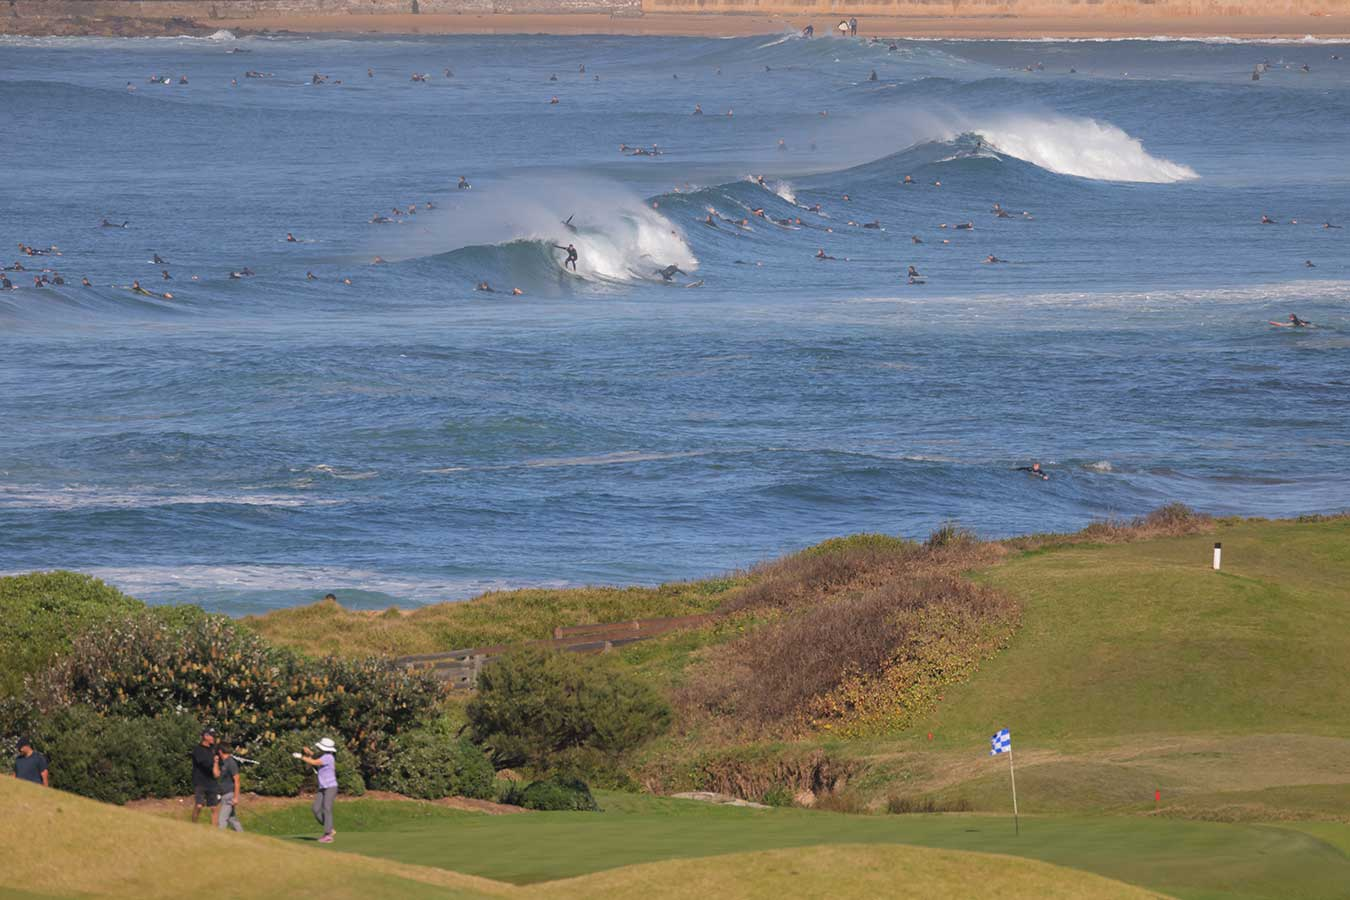 golfers-on-rolling-hills-in-foreground-many-surfers-on-olling-waves-in-background